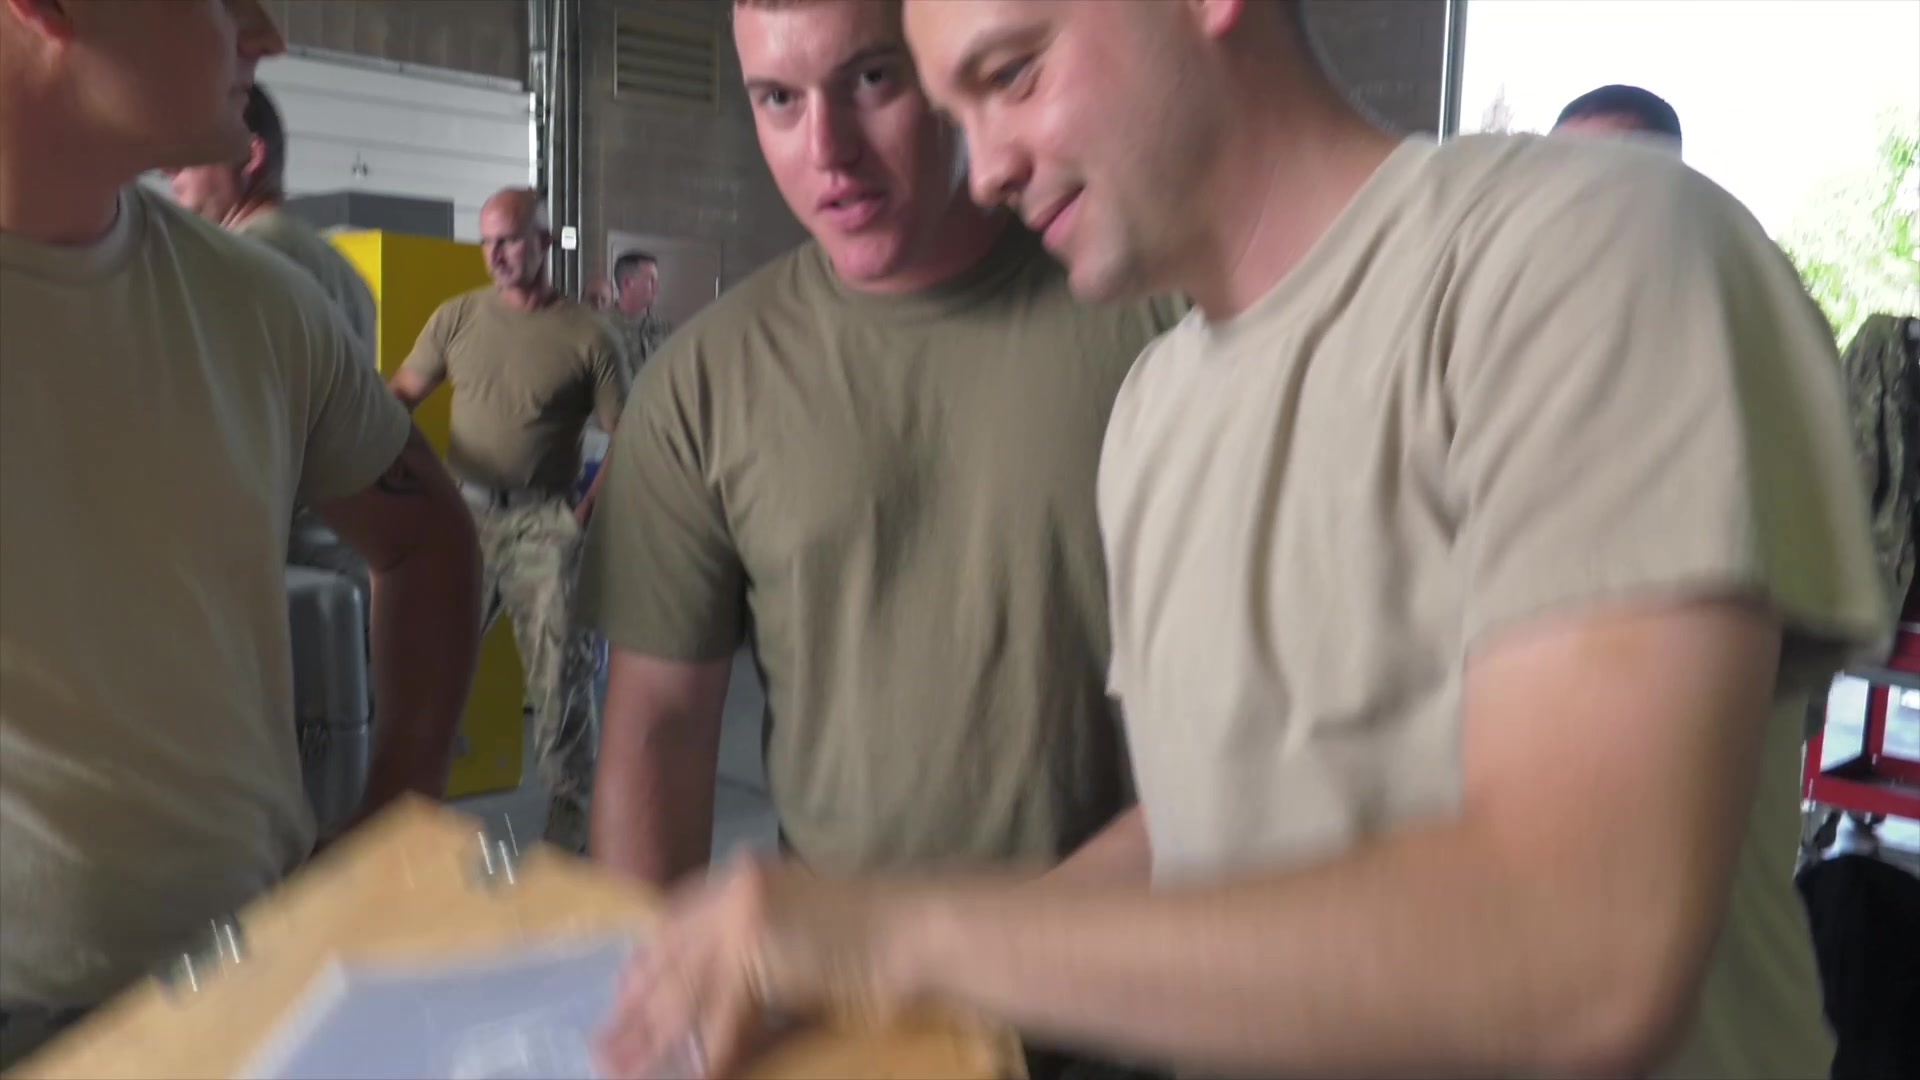 The Green Mountain Boys at the 158th FW are gearing up for a busy and exciting fall.